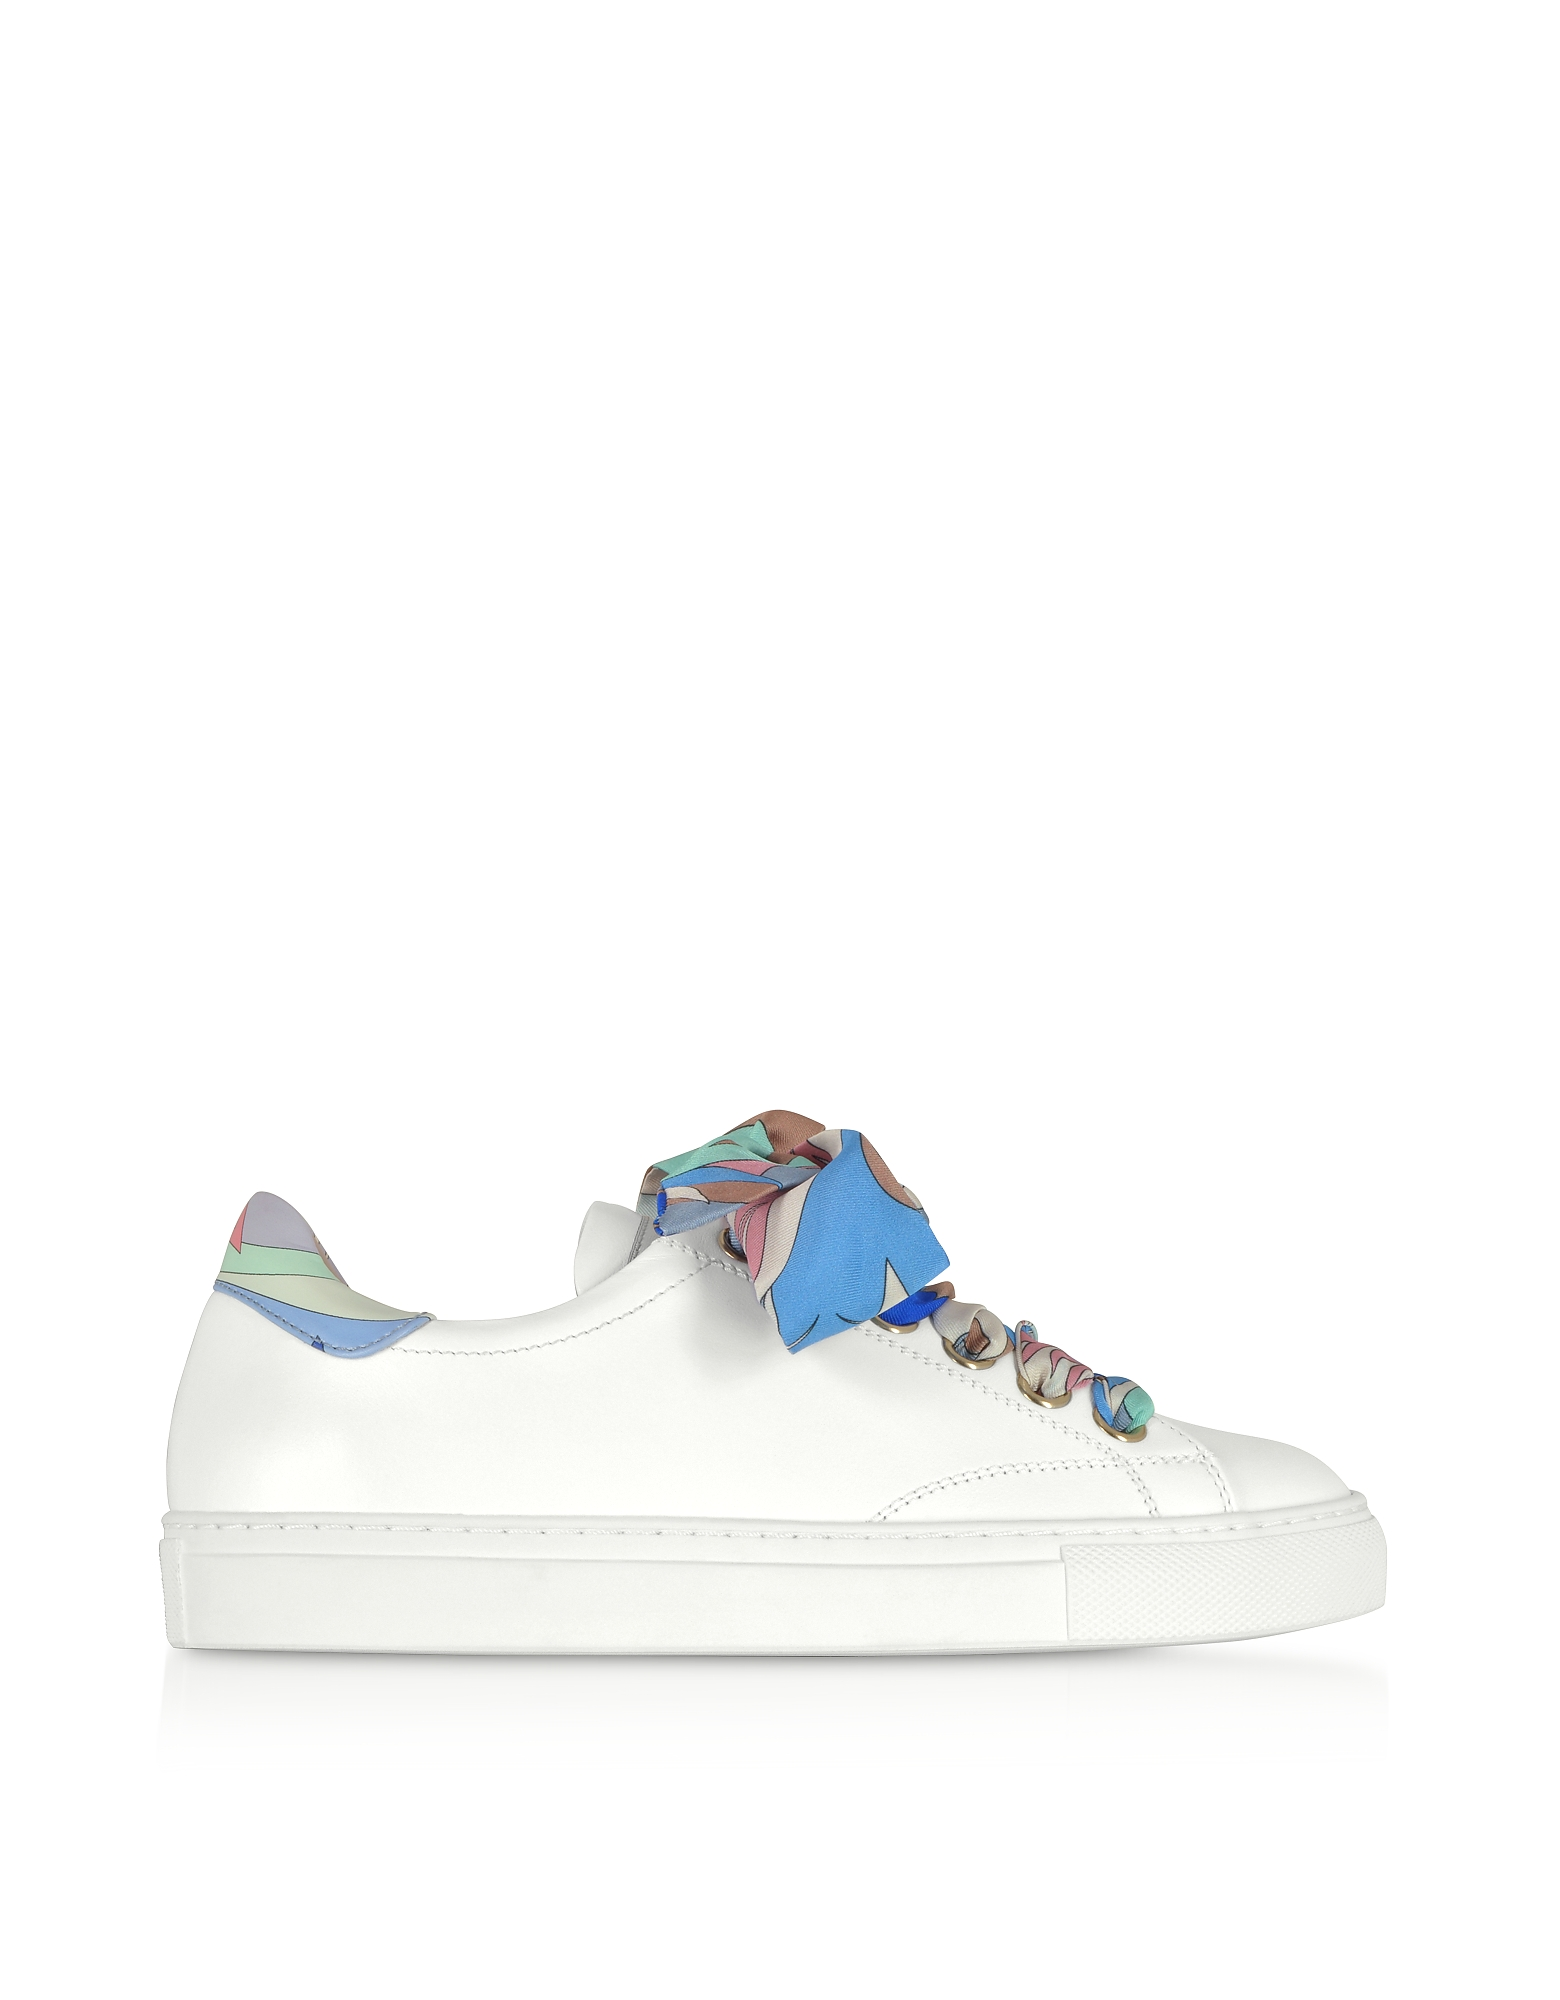 White Leather Low-top Sneakers w/Silk Printed Laces